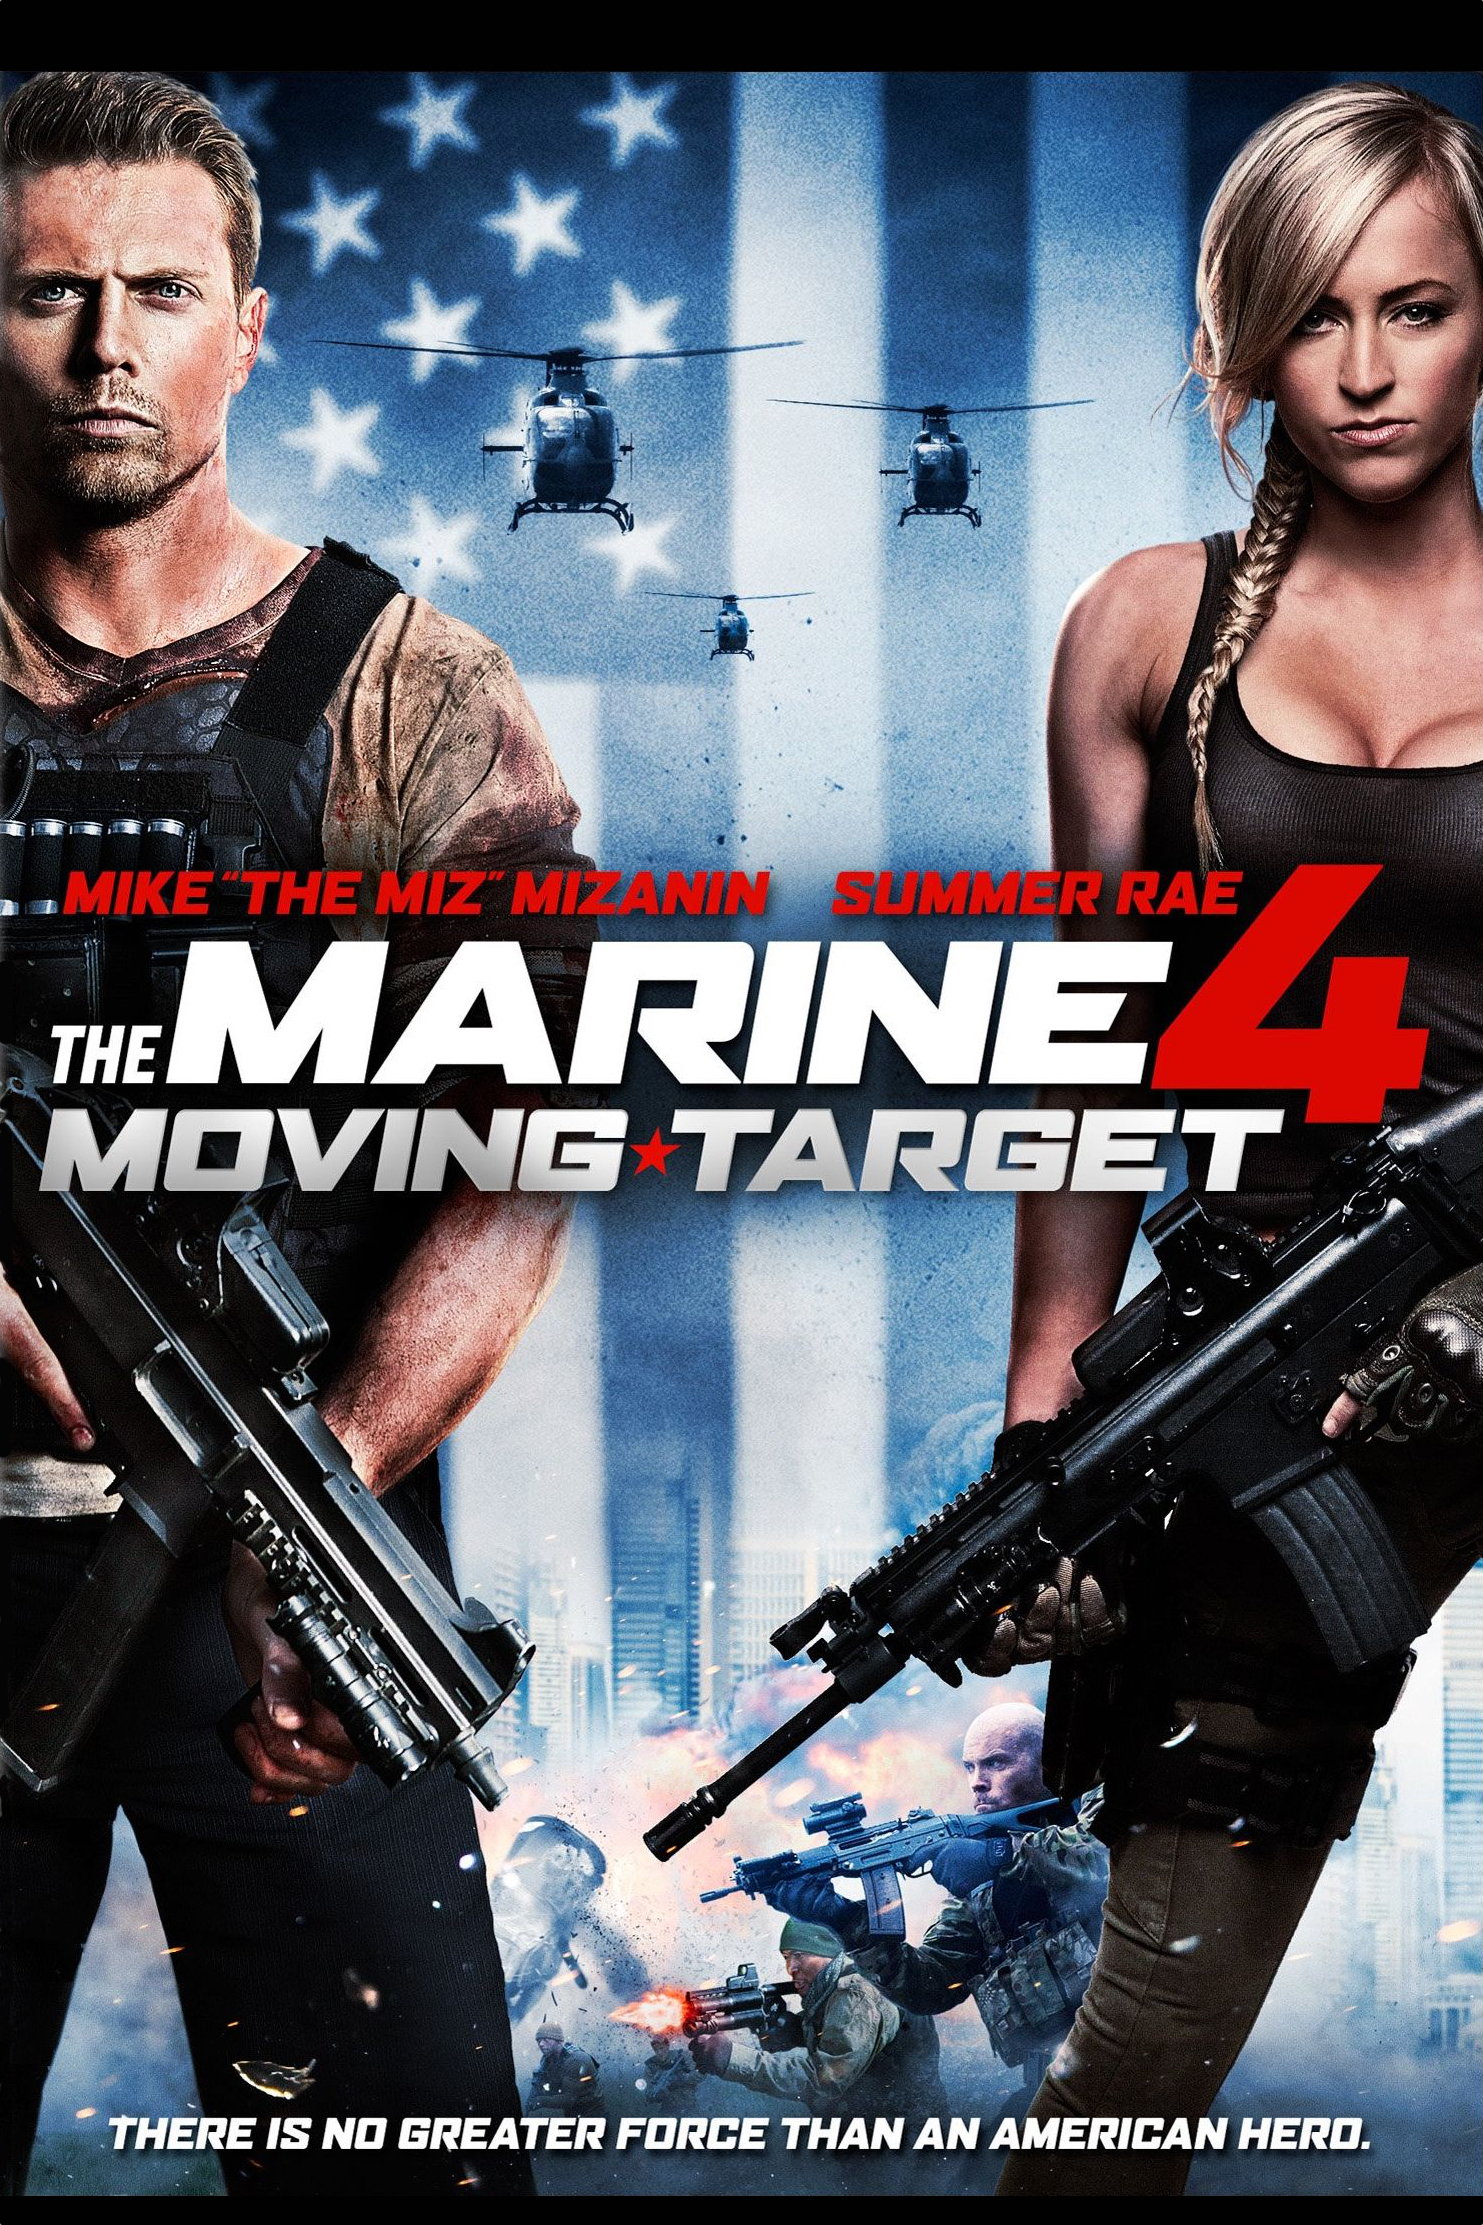 The Marine 4 - Moving Target